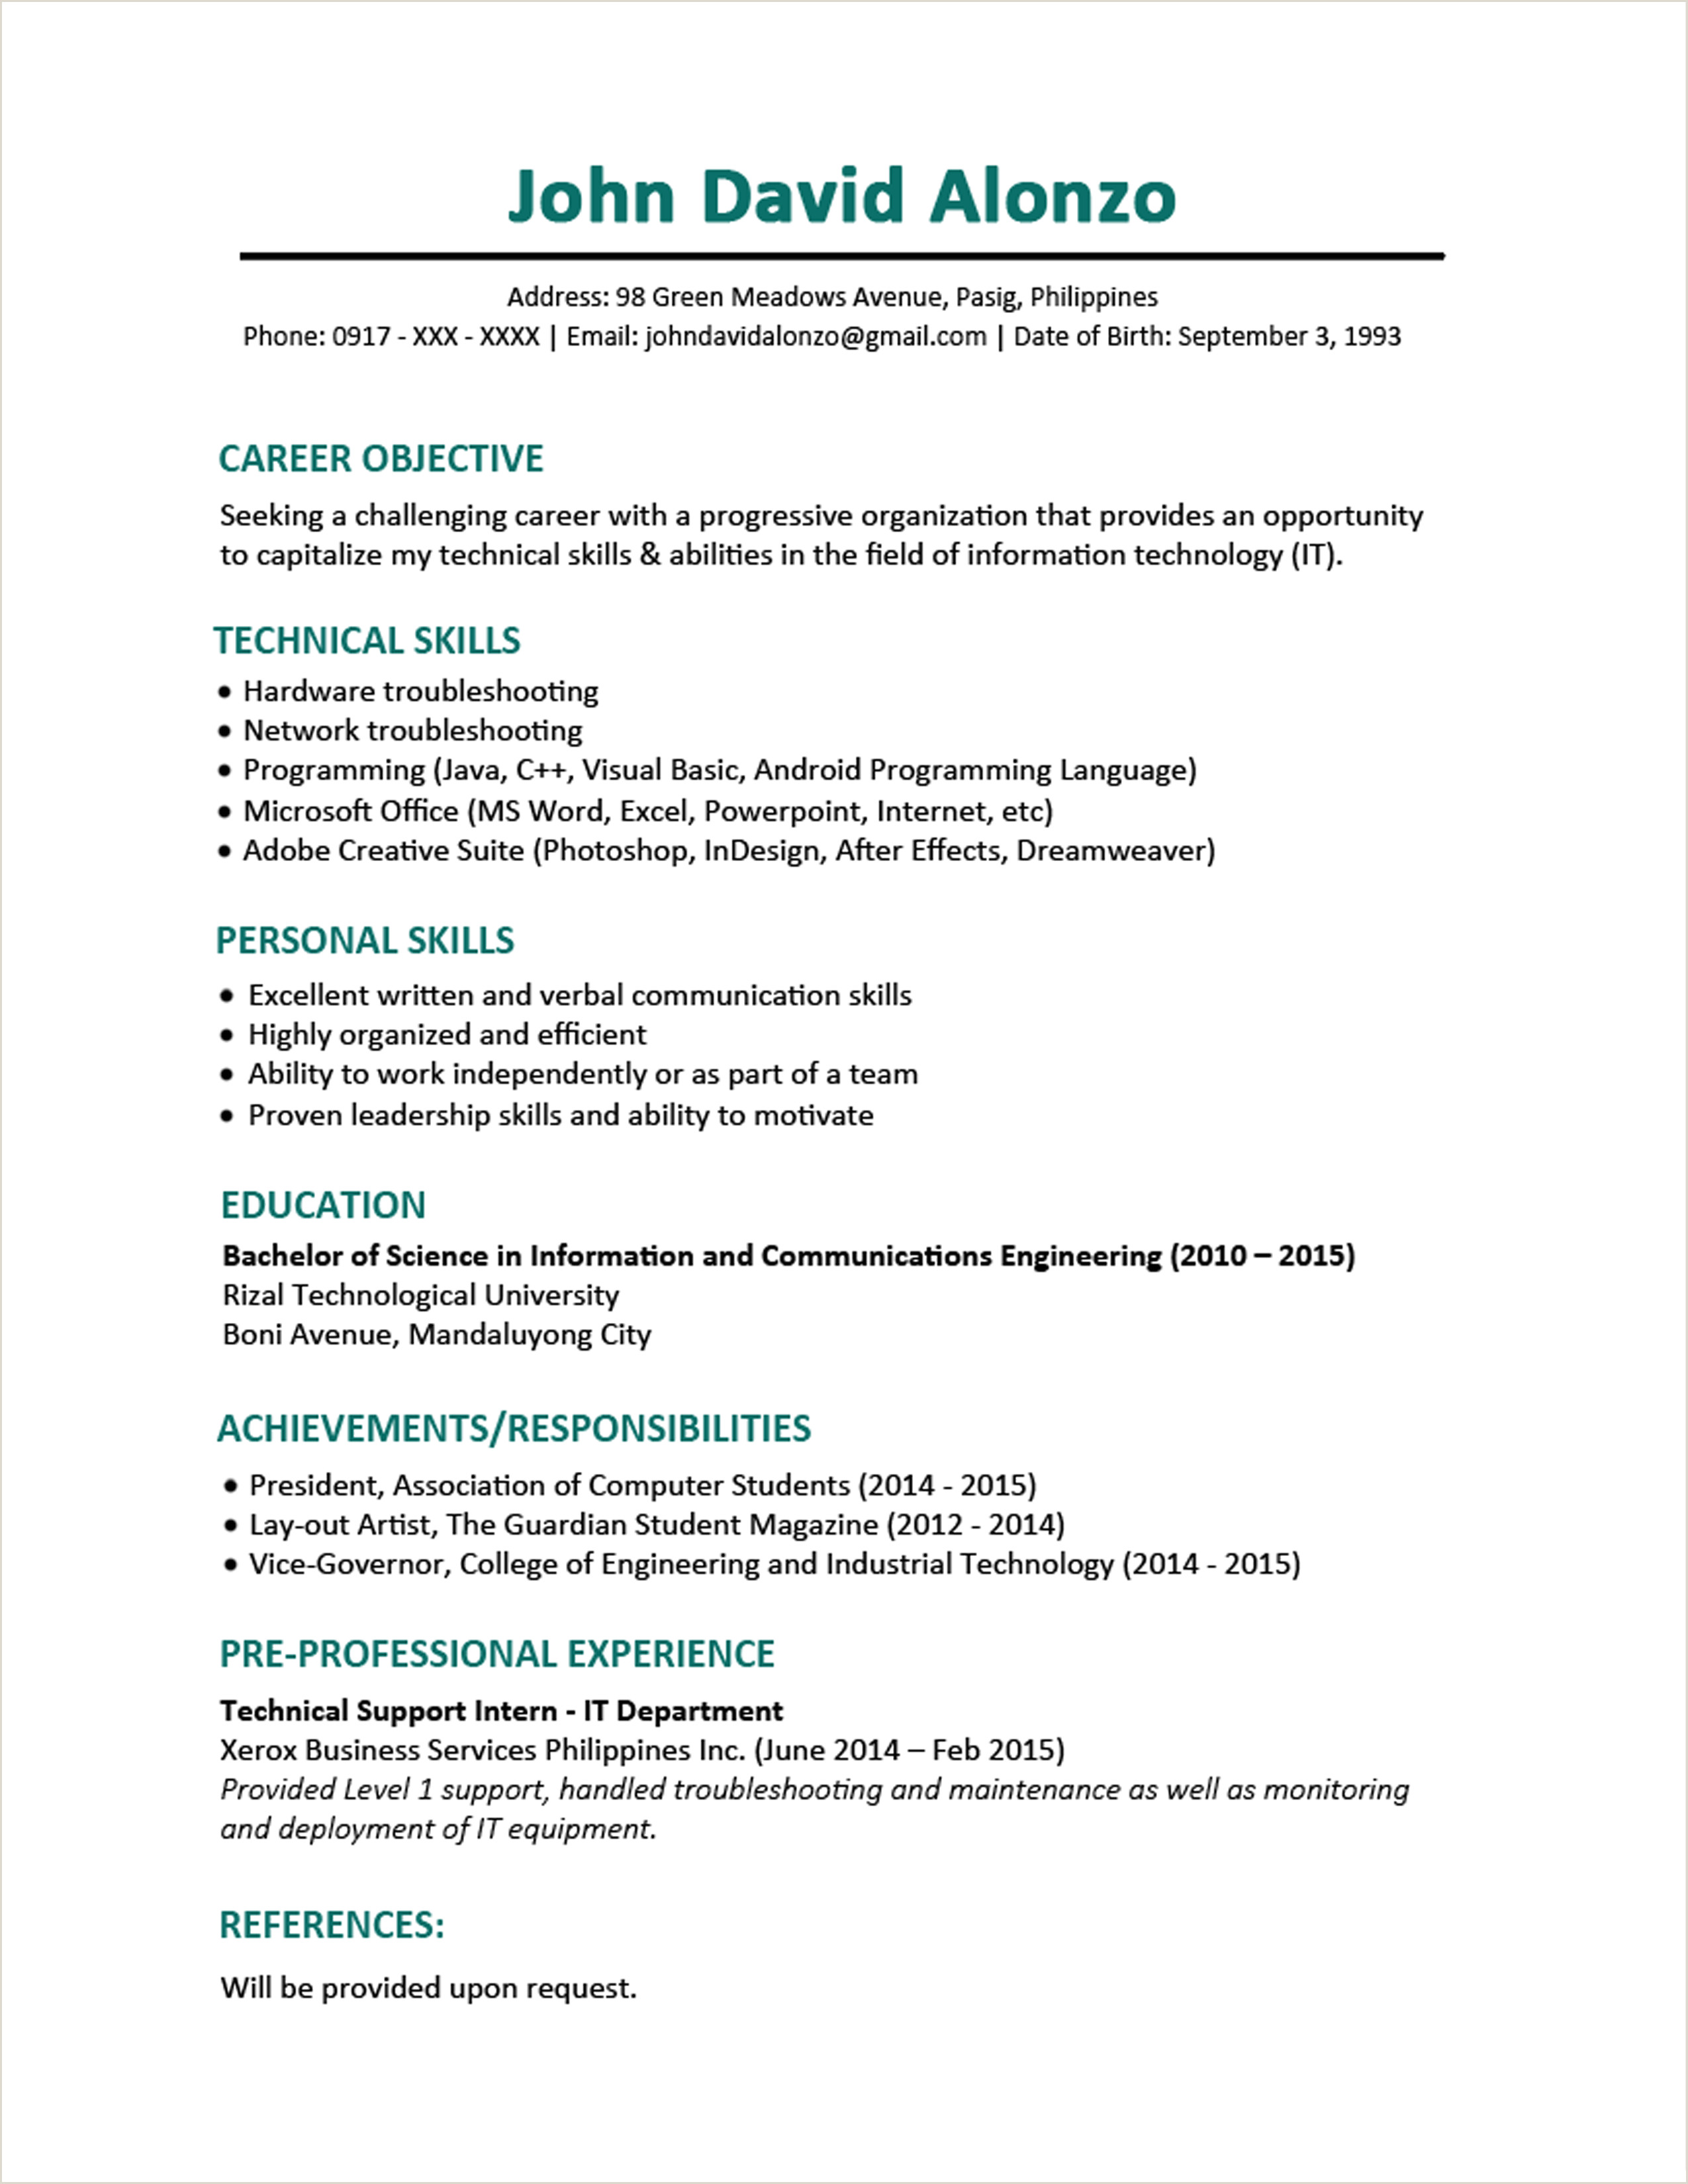 Fresher Resume Format In Word File Download 3 Page Resume Format For Freshers Resume Templates